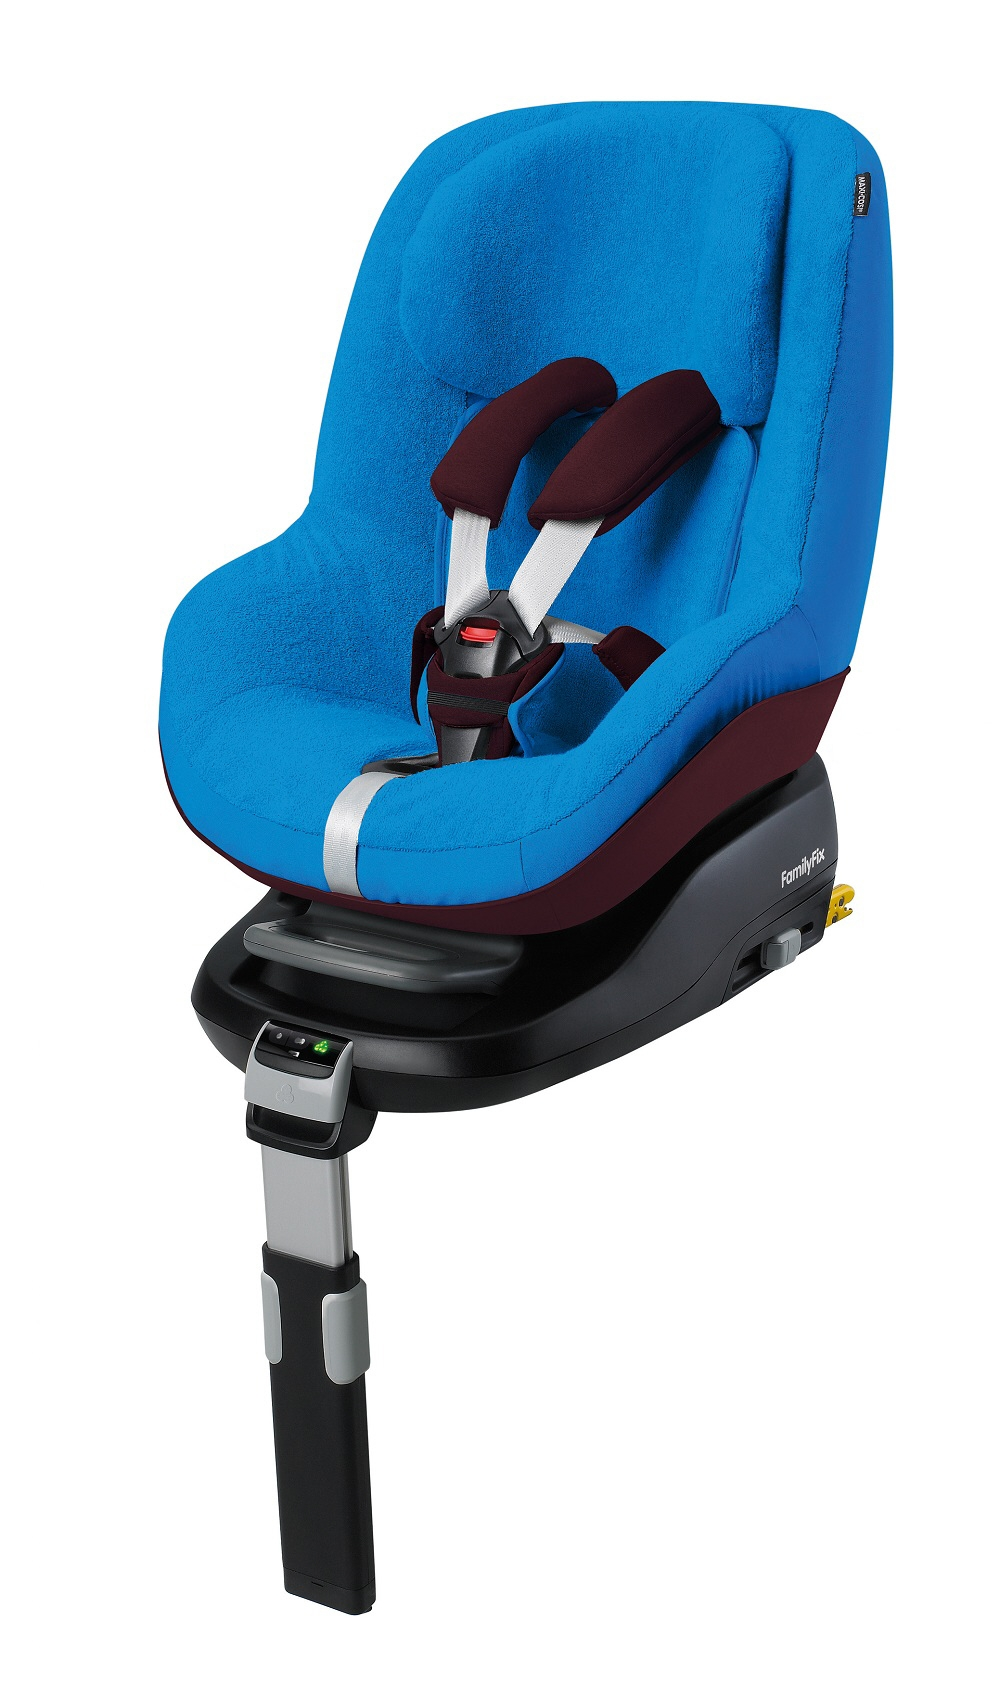 Car Seat Accessories - Buy at kidsroom | Car Seats